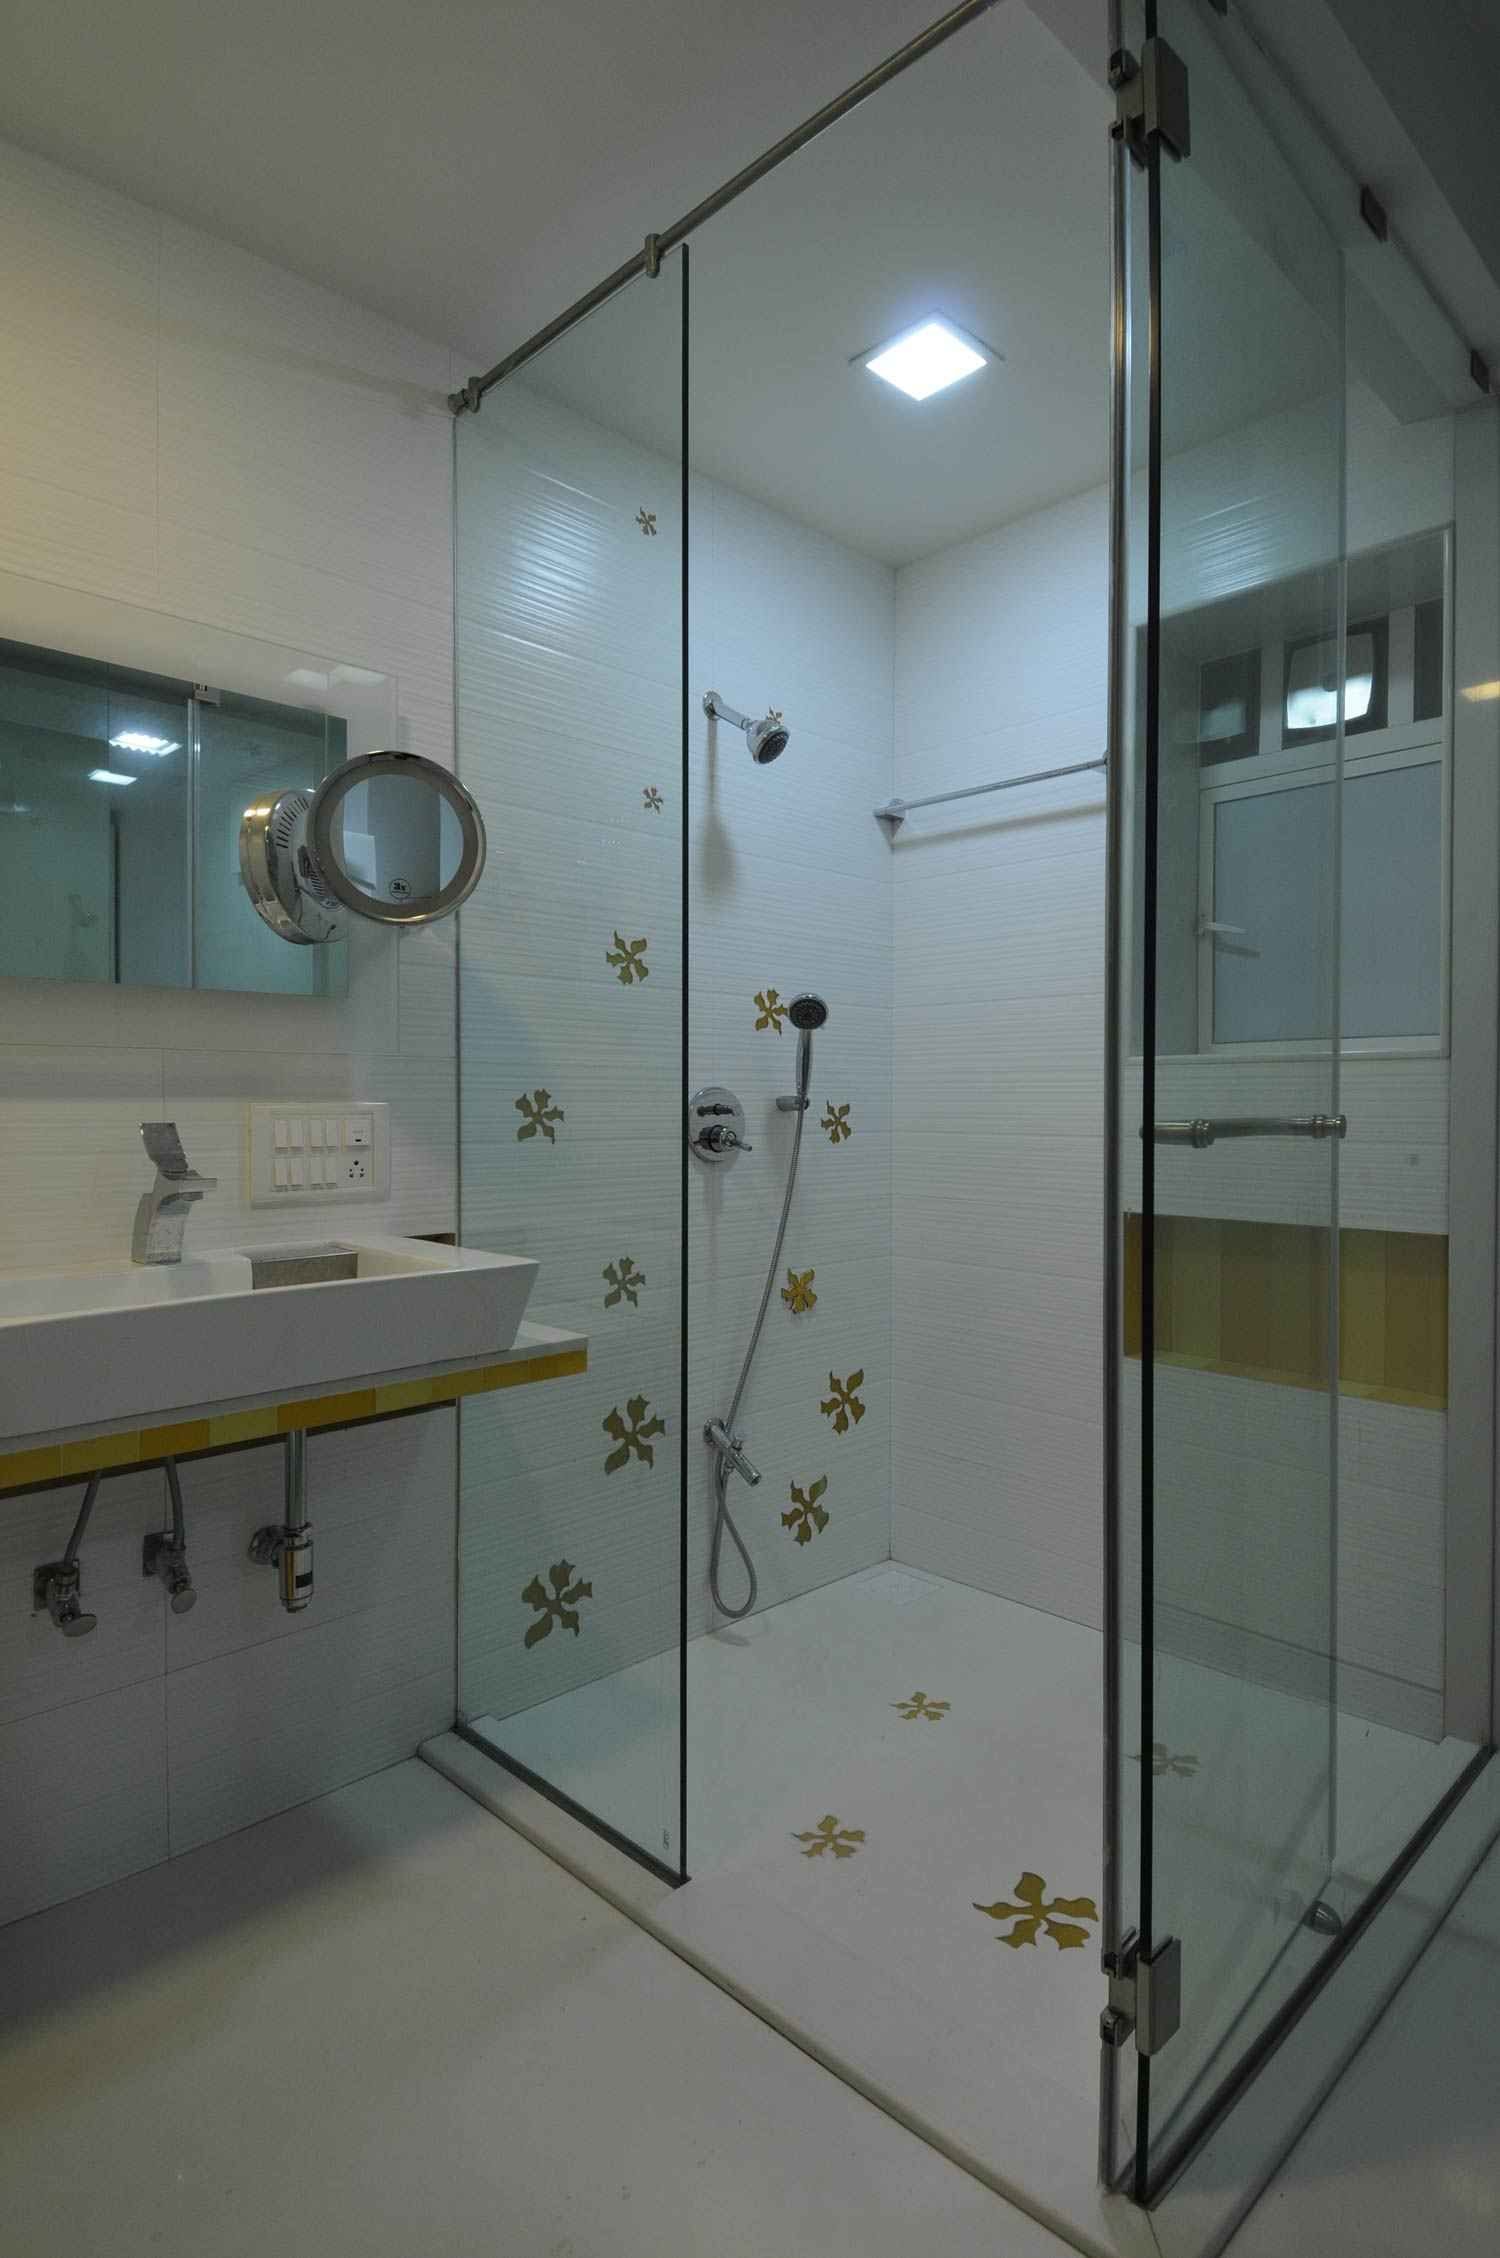 Bathroom with Shower Enclosure design by Sonali Shah, Architect in Mumbai, India